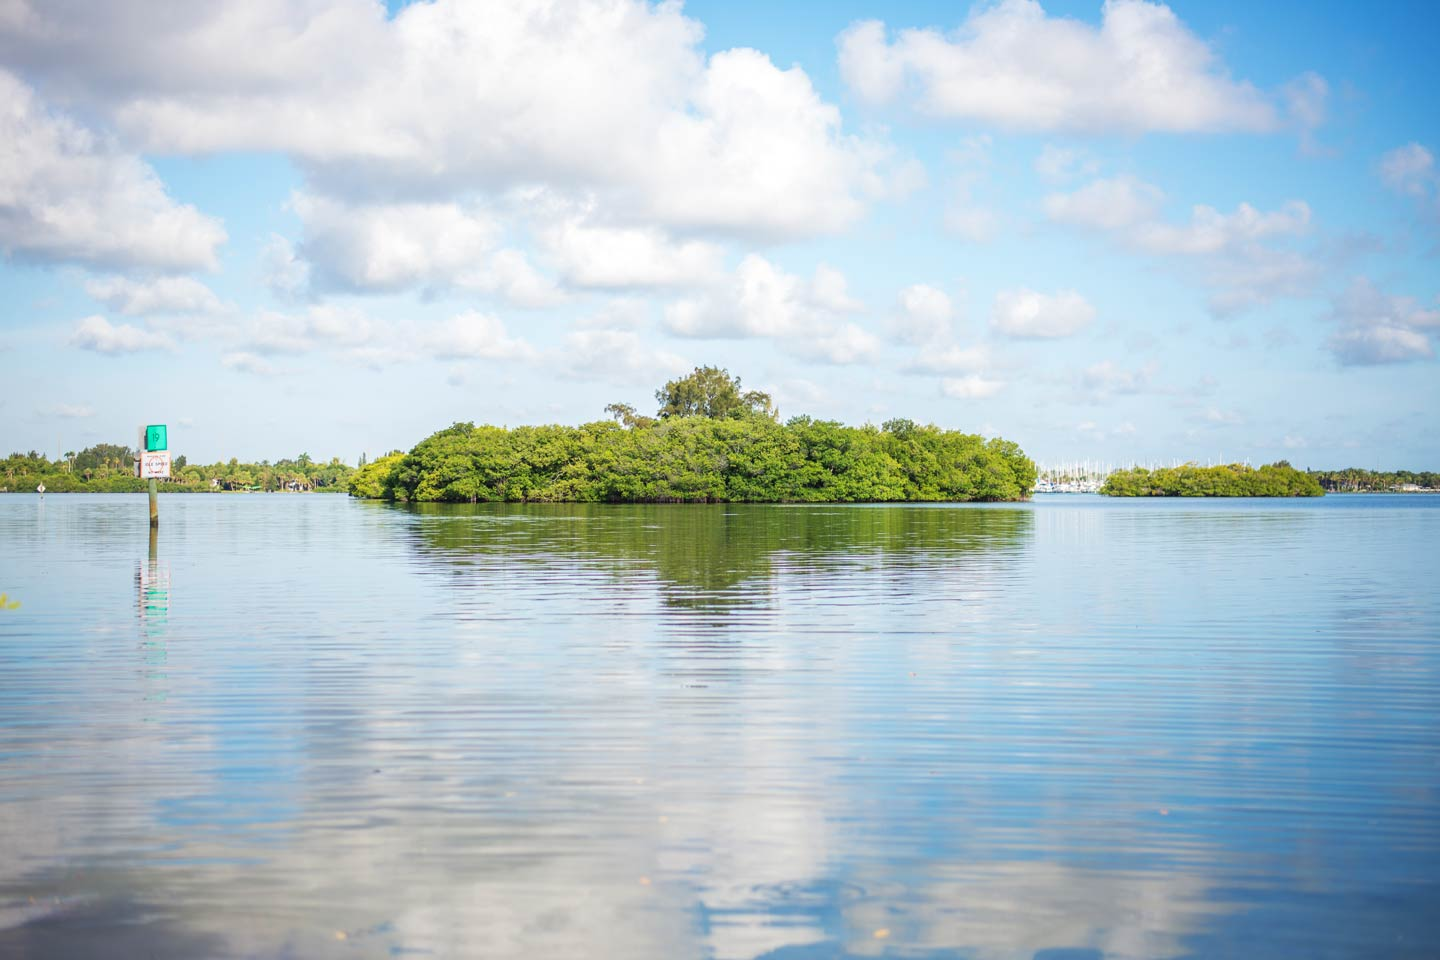 A view of a spoil island in the Indian River Lagoon System on a sunny day